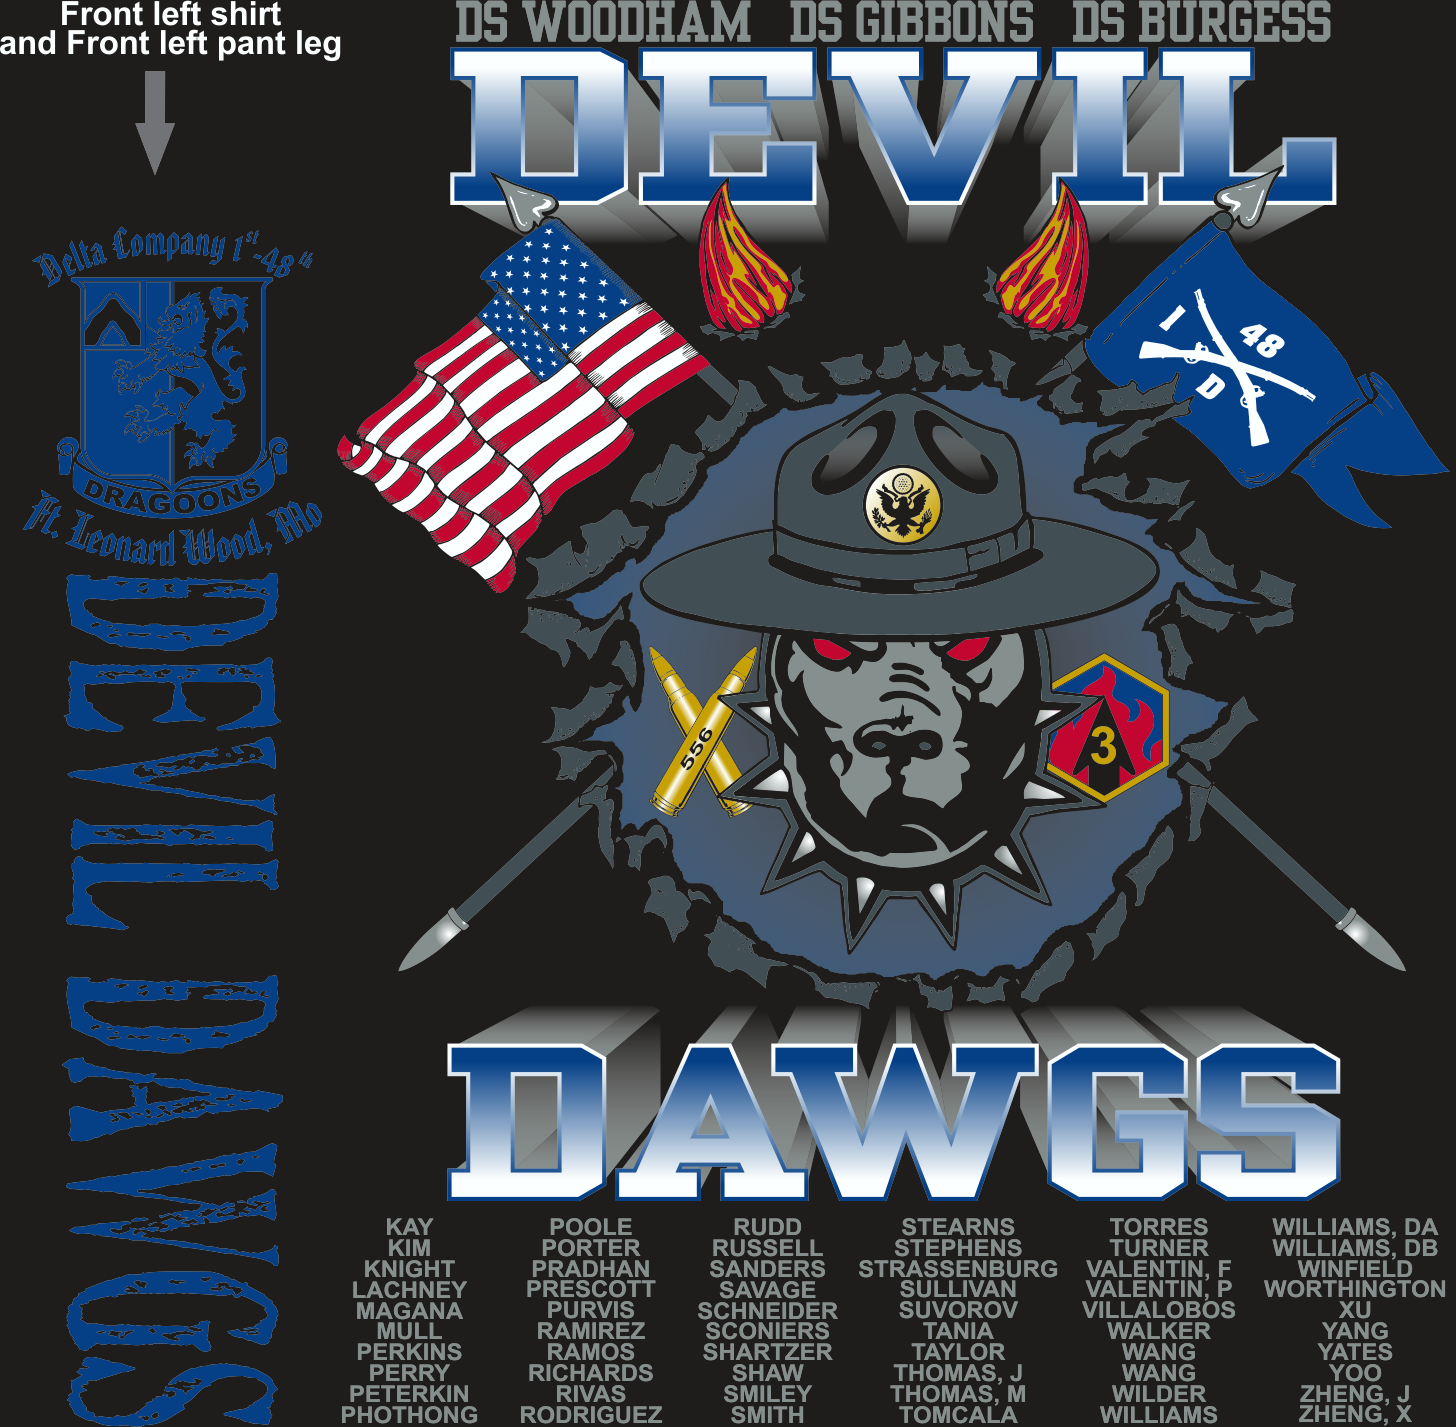 DELTA 1-48 DEVIL DAWGS GRADUATING DAY 6-30-2016 digital